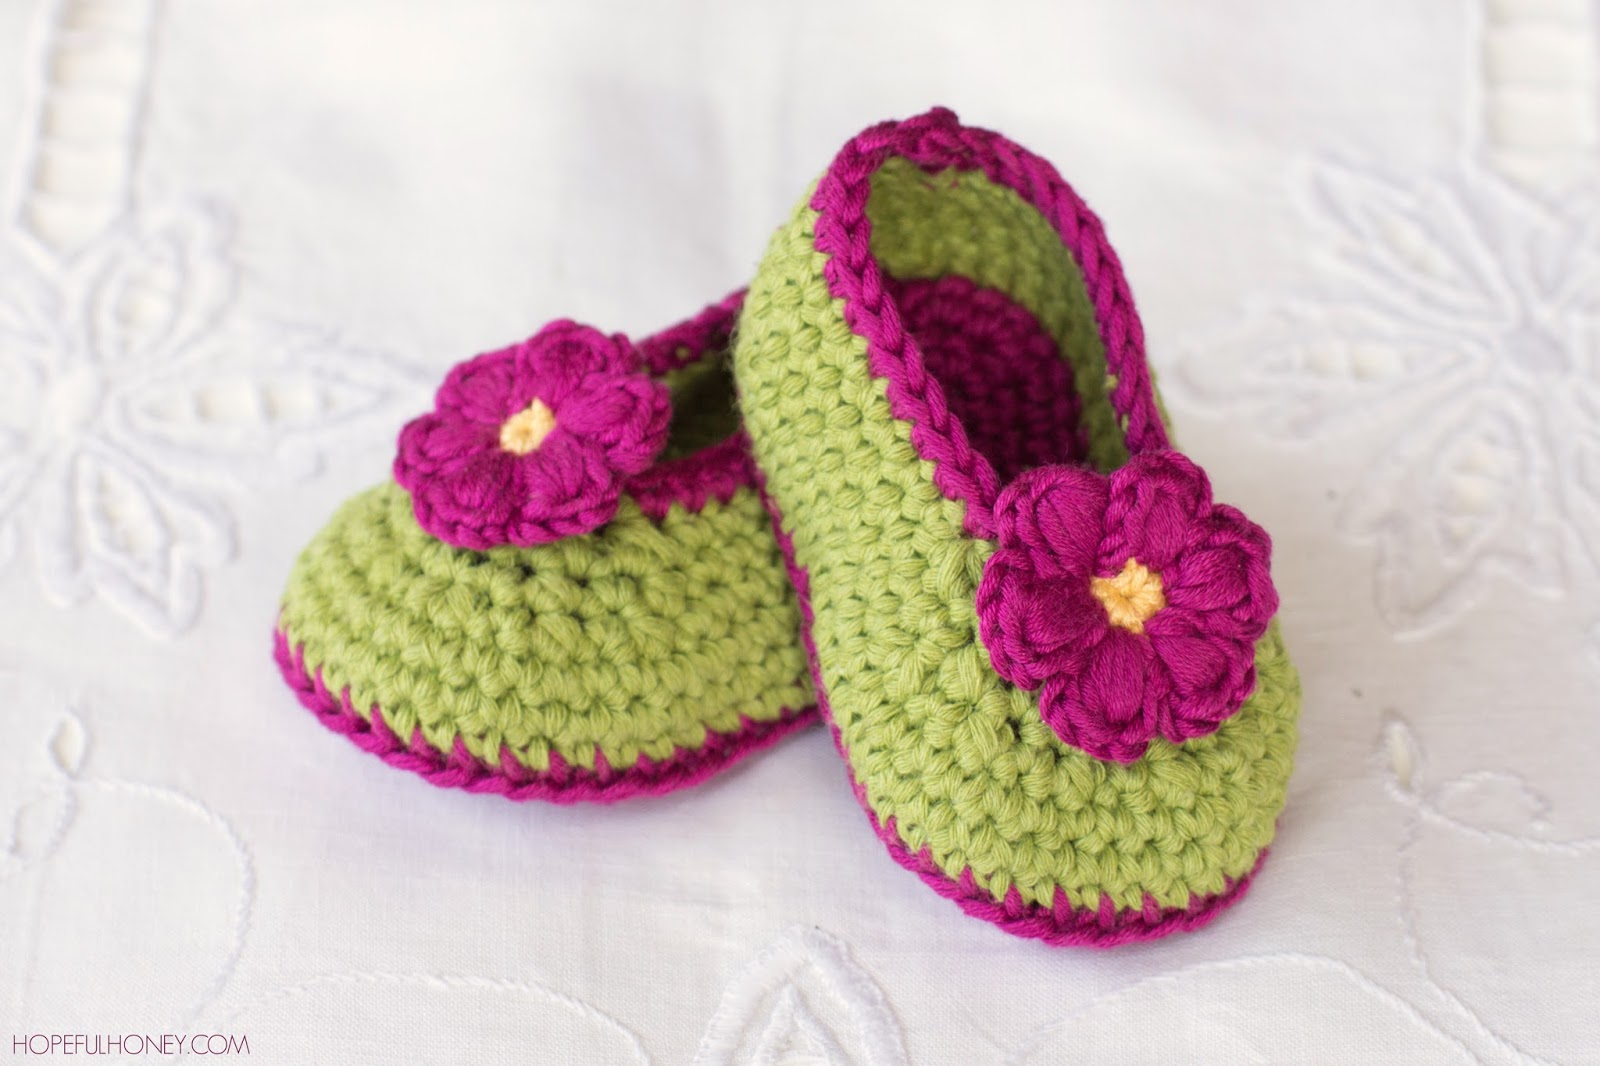 Crochet Baby Booties Pattern With Pictures : Hopeful Honey Craft, Crochet, Create: Fairy Blossom Baby ...